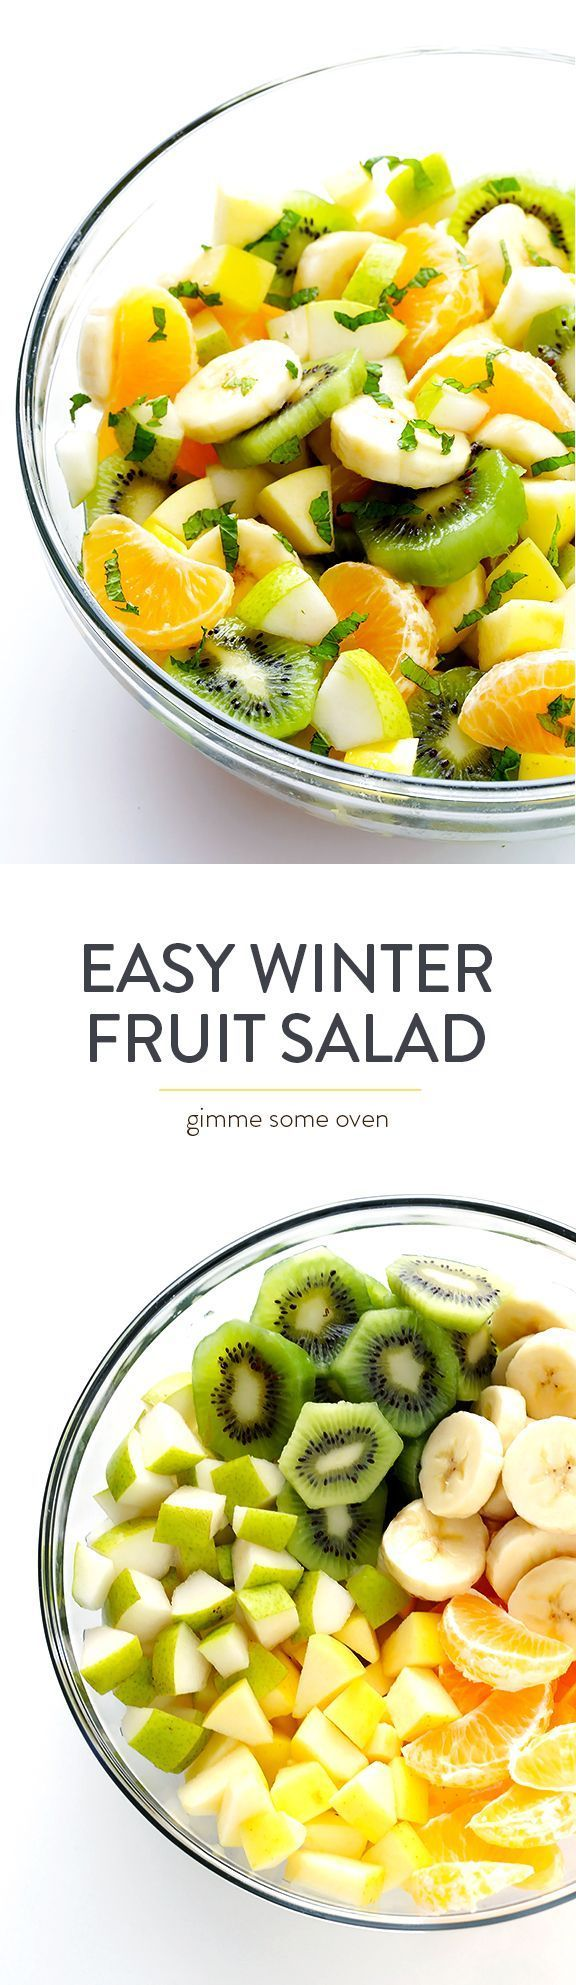 This Easy Winter Fruit Salad recipe is made with seasonal ingredients, sweetened with a touch of honey and lime juice, and it's so pretty and fresh and delicious!